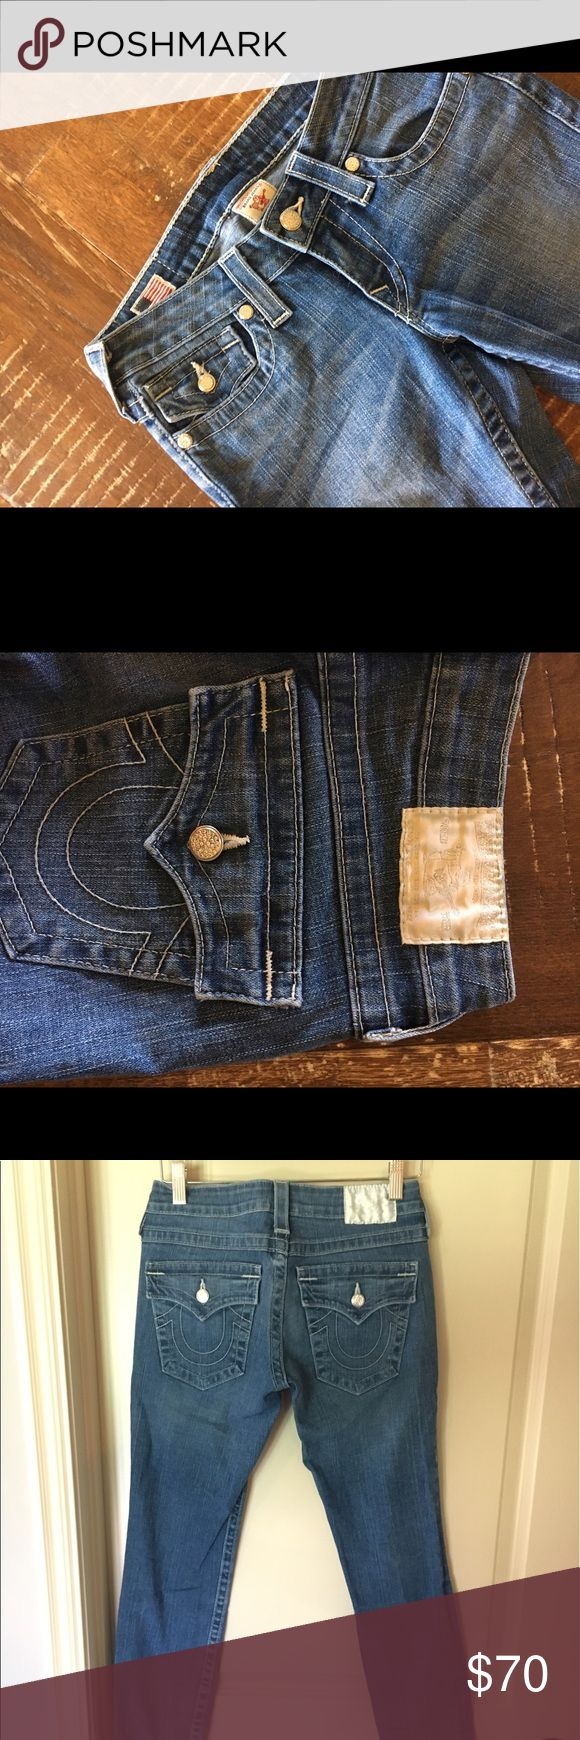 True religion jeans true religion jeans! Perfect for all seasons! #truereligion #jeans #truereligionjeans #denim #fancyjeans #newjeans True Religion Jeans Skinny